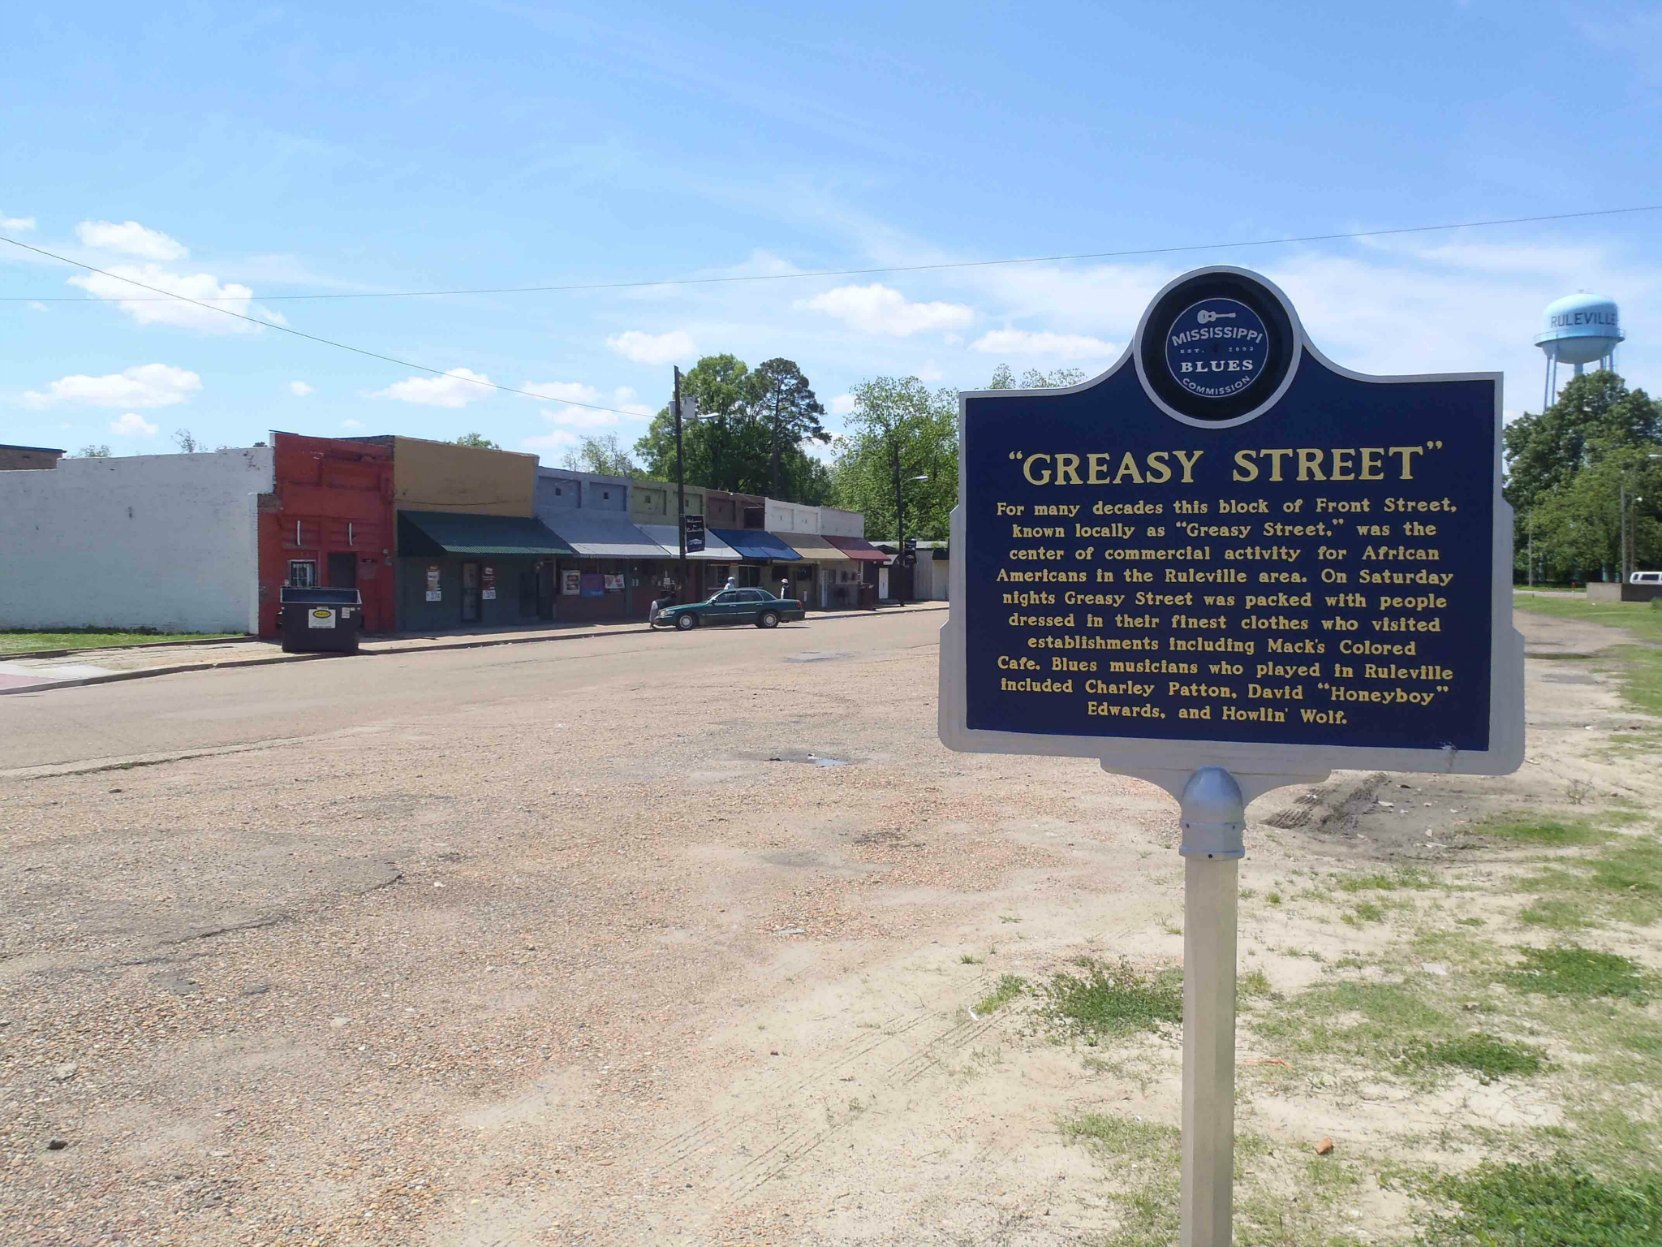 Mississippi Blues Trail marker commemorating Greasy Street, Ruleville, Mississippi